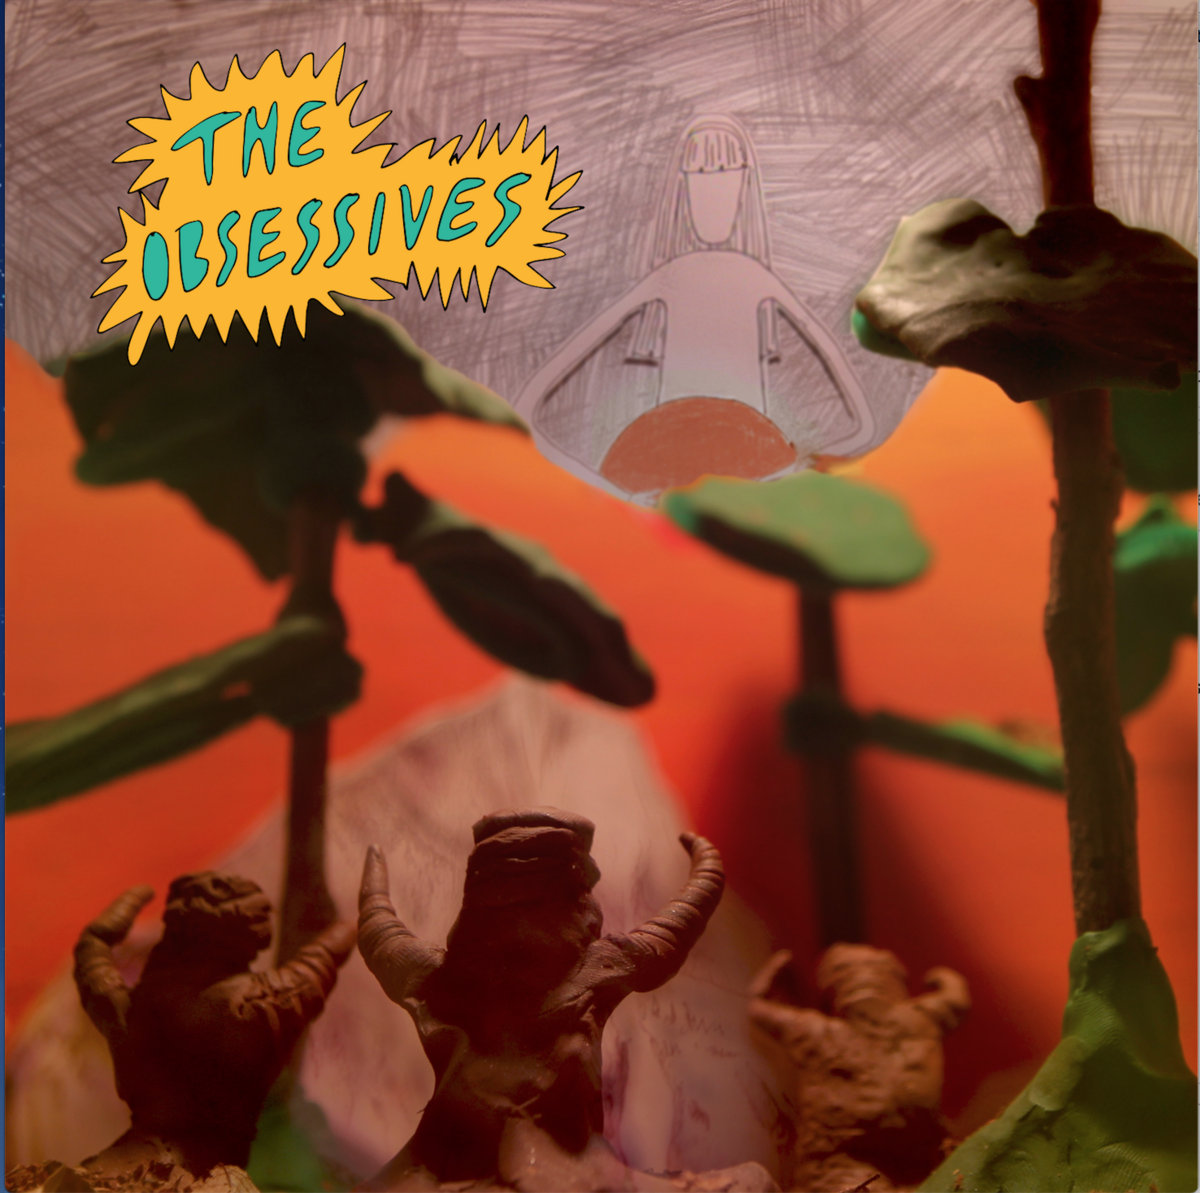 The Obsessives -